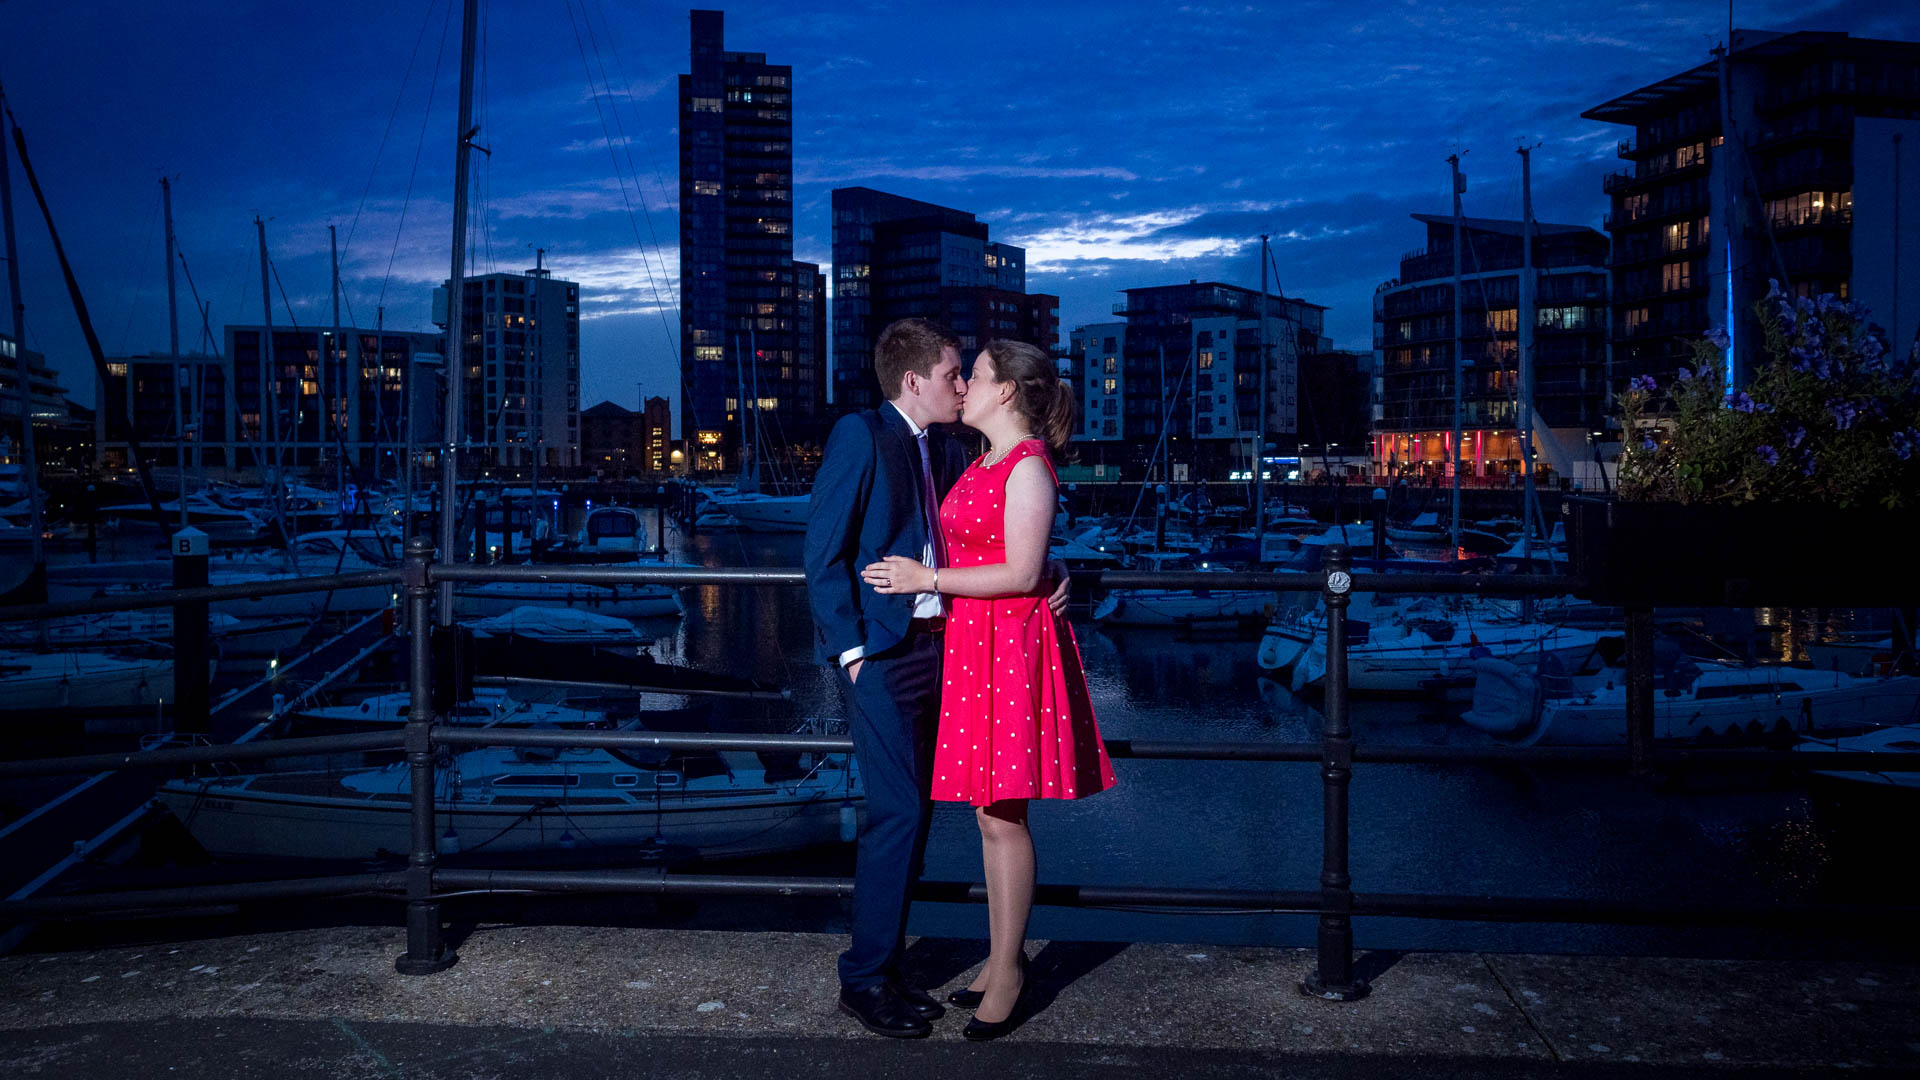 Woman in red dress and man in dark suit kiss in front of yacht marina at dusk